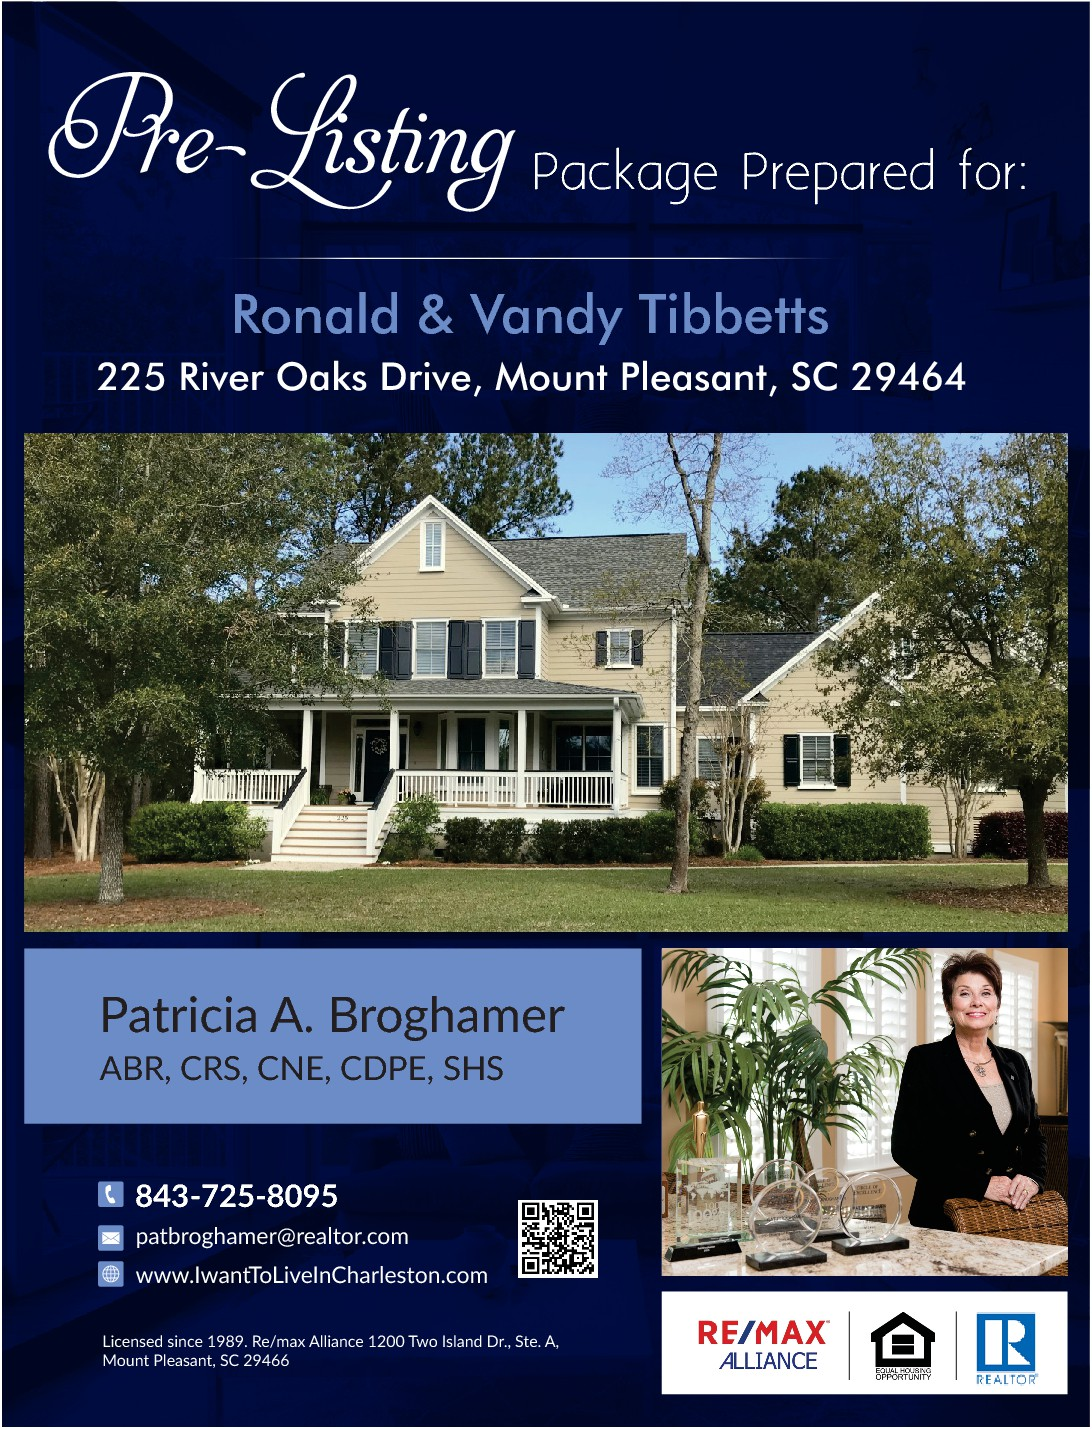 """Luxury / High End Eye Catching flyer """"Templet"""" for Real Estate PDF for Pre-Listing Pkg in Publisher"""